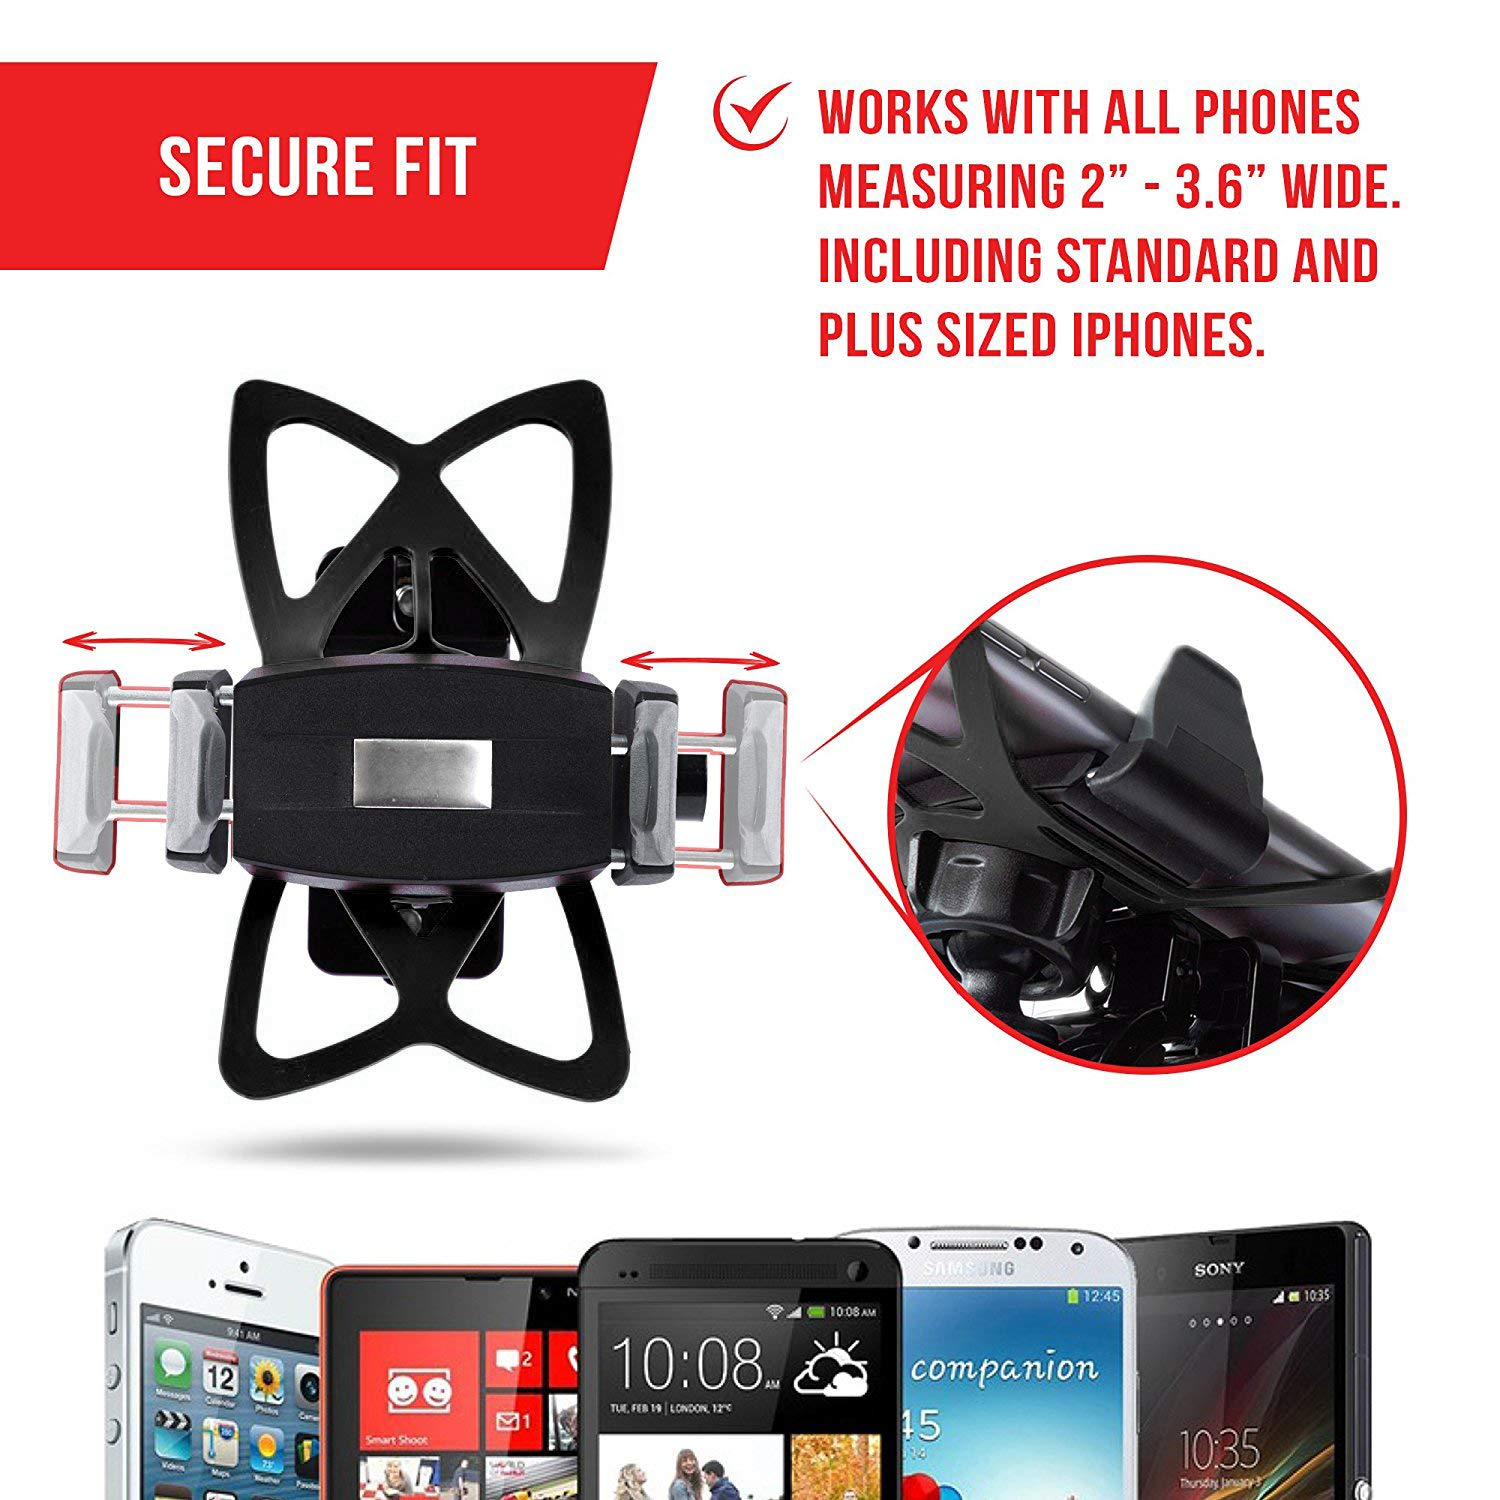 Phone Holder for Motorcycle or Bike - by TACKFORM [Quick Clamp] Heavy Duty Mounting Solution for Phones up to 3.5'' Wide. Works on all Bars from .6'' - 1.5'' In diameter by Tackform Solutions